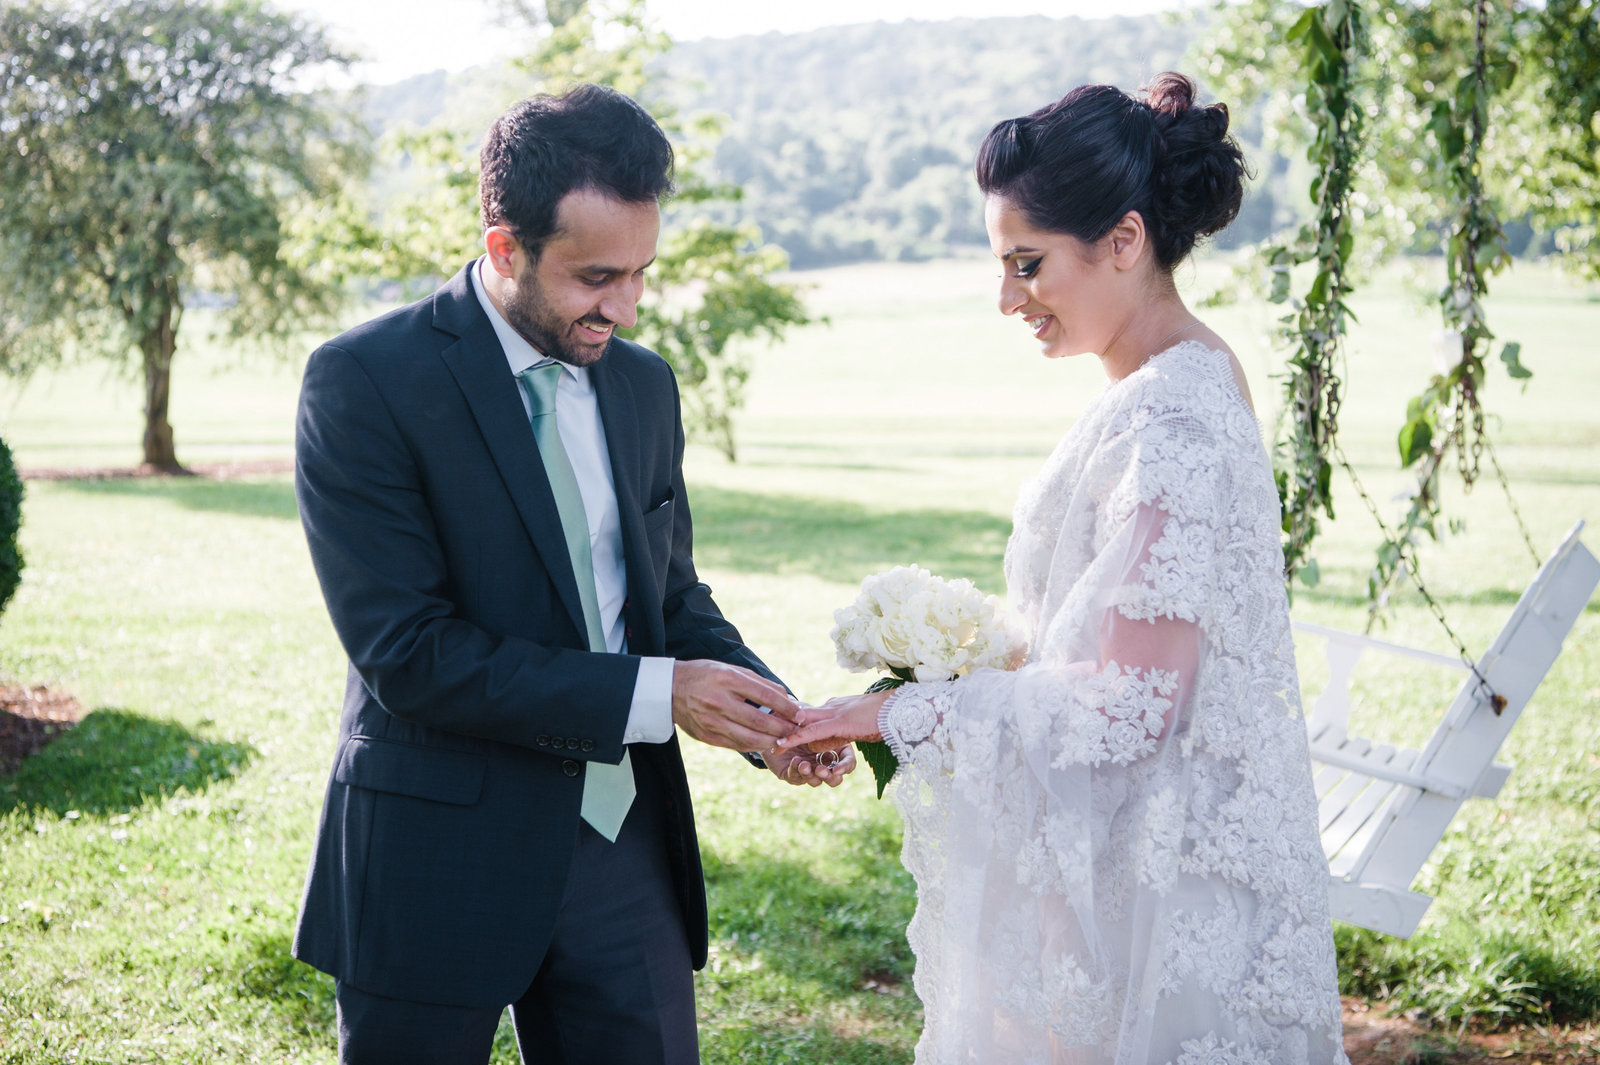 Minhas-Sohail Wedding by The Hill Studios-141